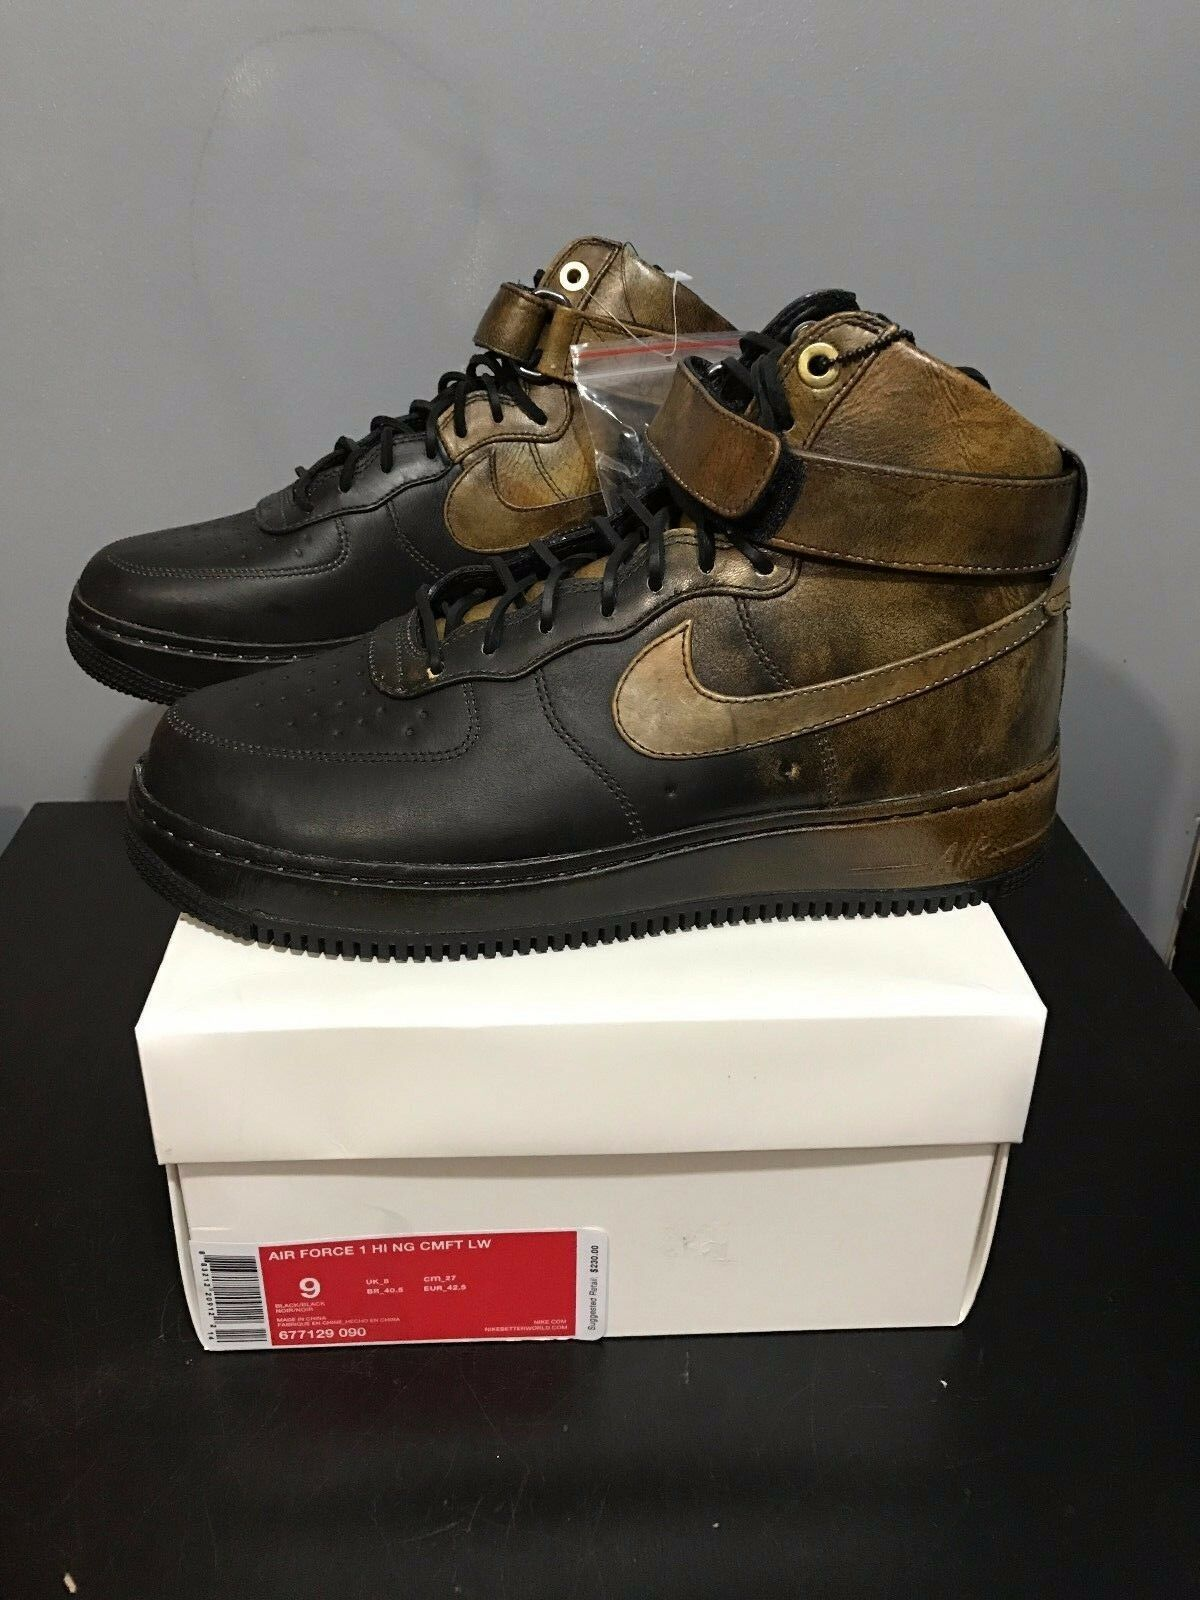 release date bf43c 800be well-wreapped NIKE AIR FORCE 1 PIGALLE HI CMFT SZ 9 677129-090 PPP